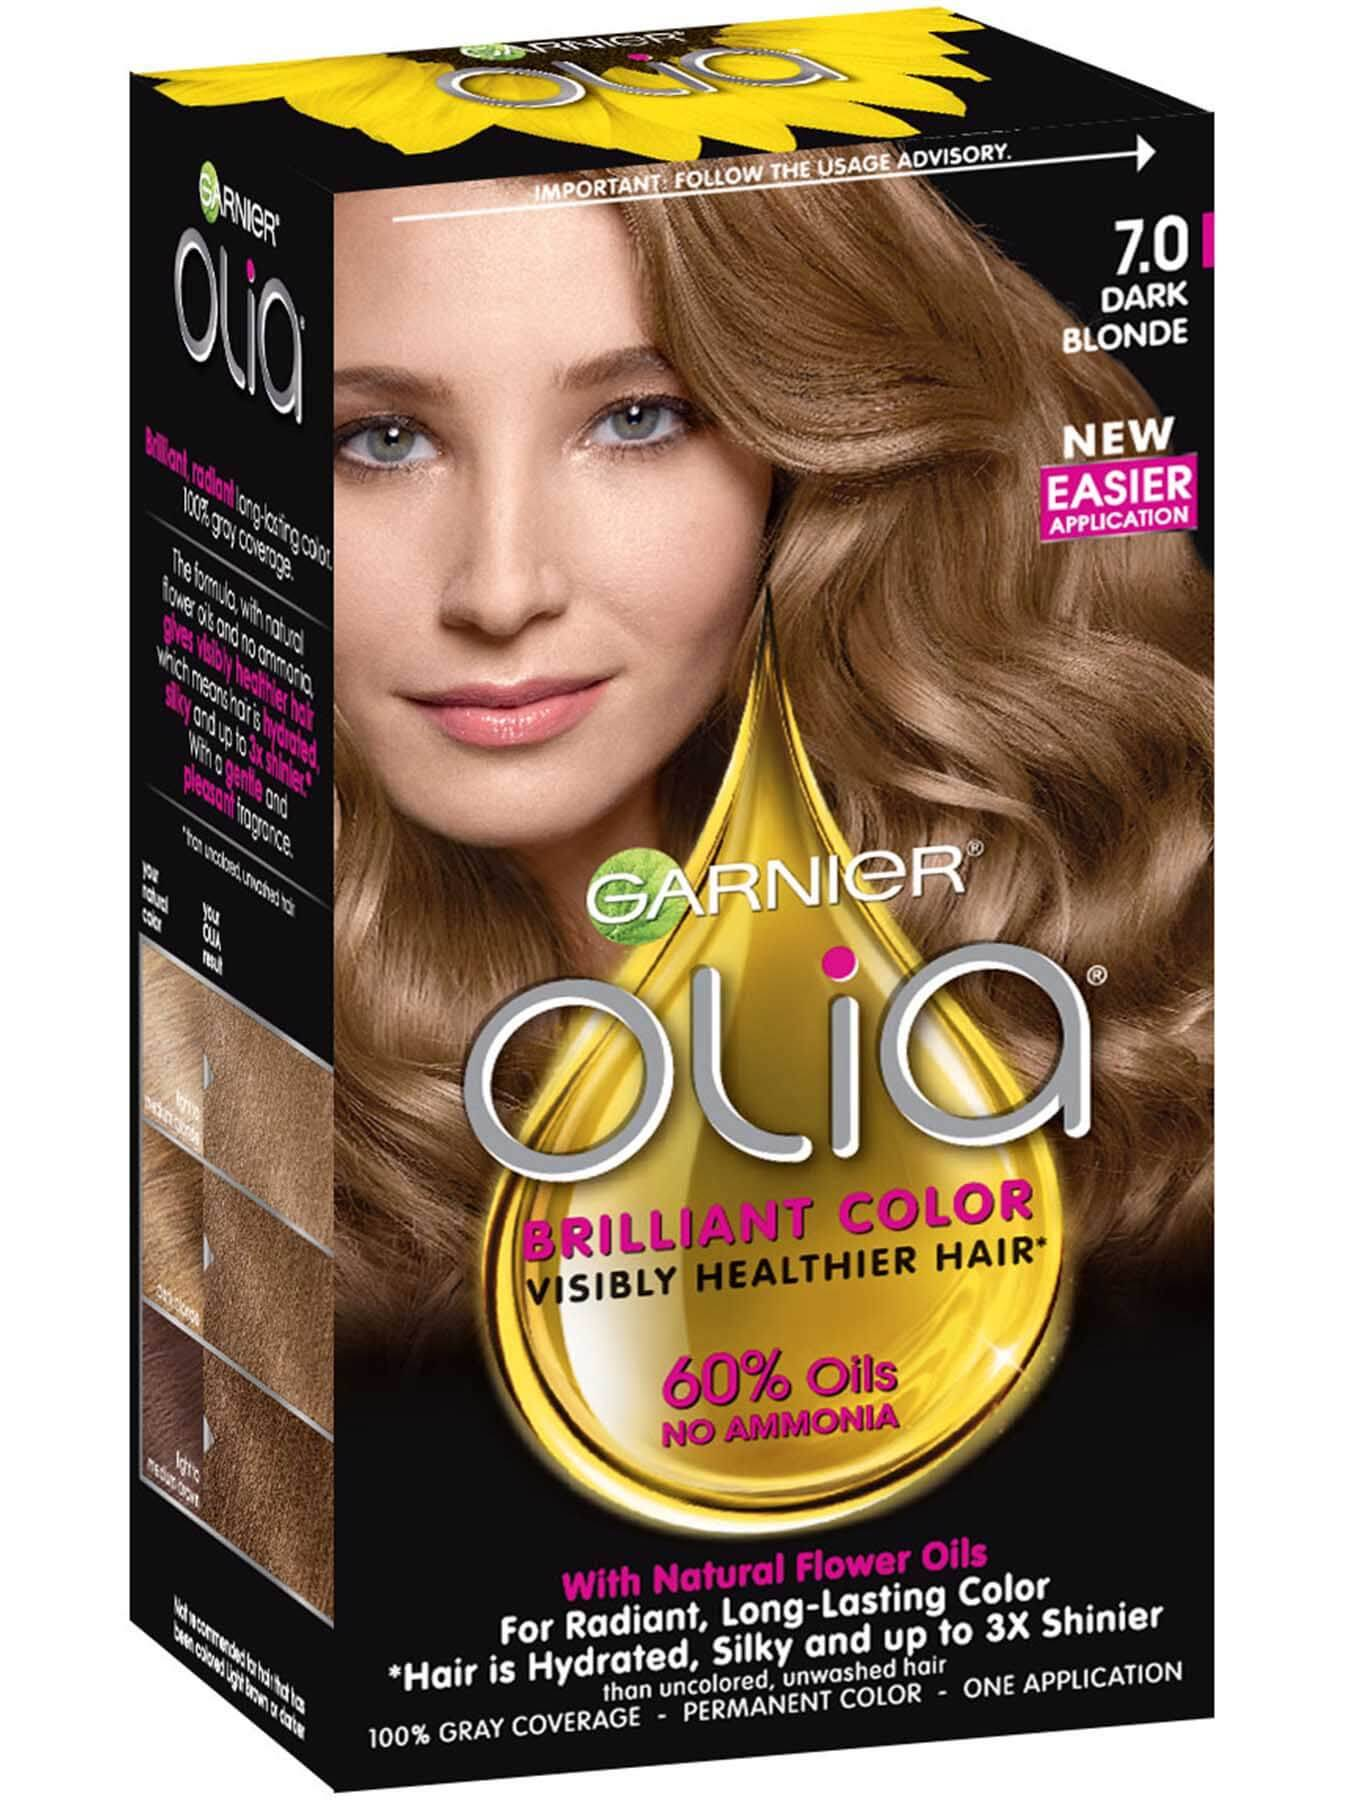 Olia Ammonia Free Permanent Hair Color Dark Blonde